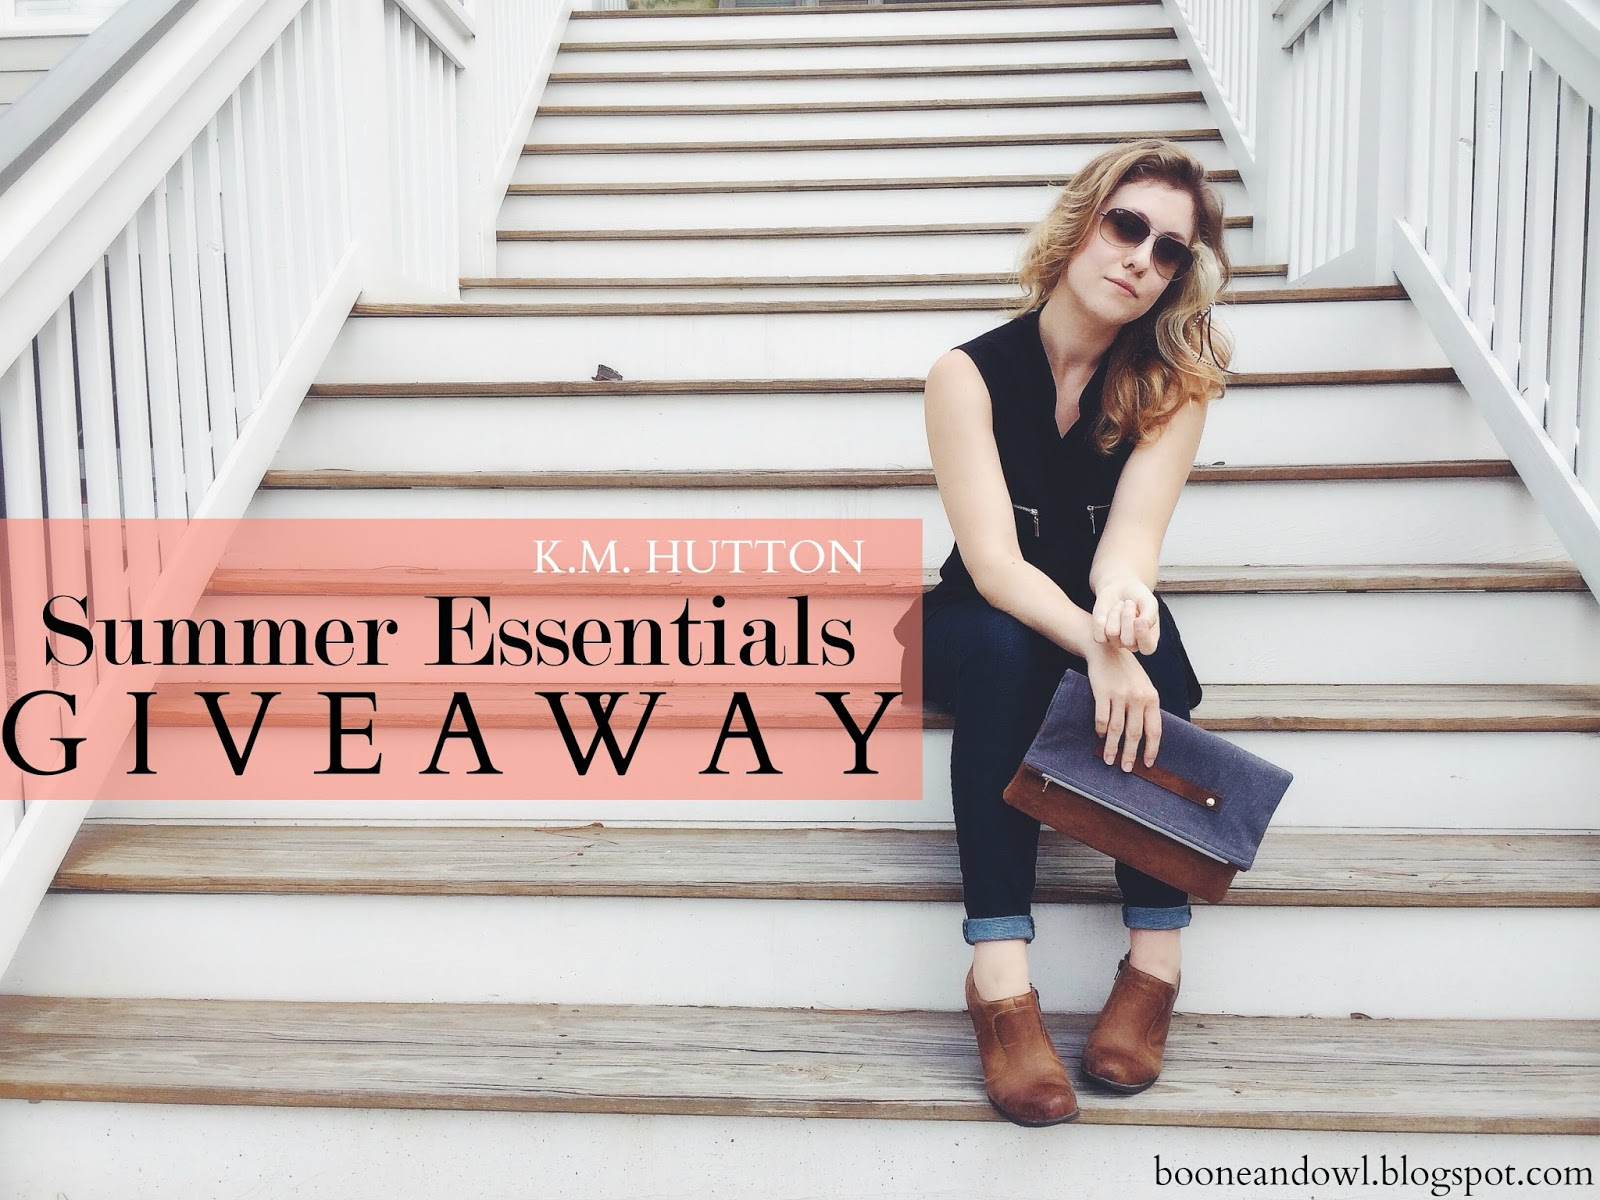 K.M. HUTTON SUMMER ESSENTIALS GIVEAWAY